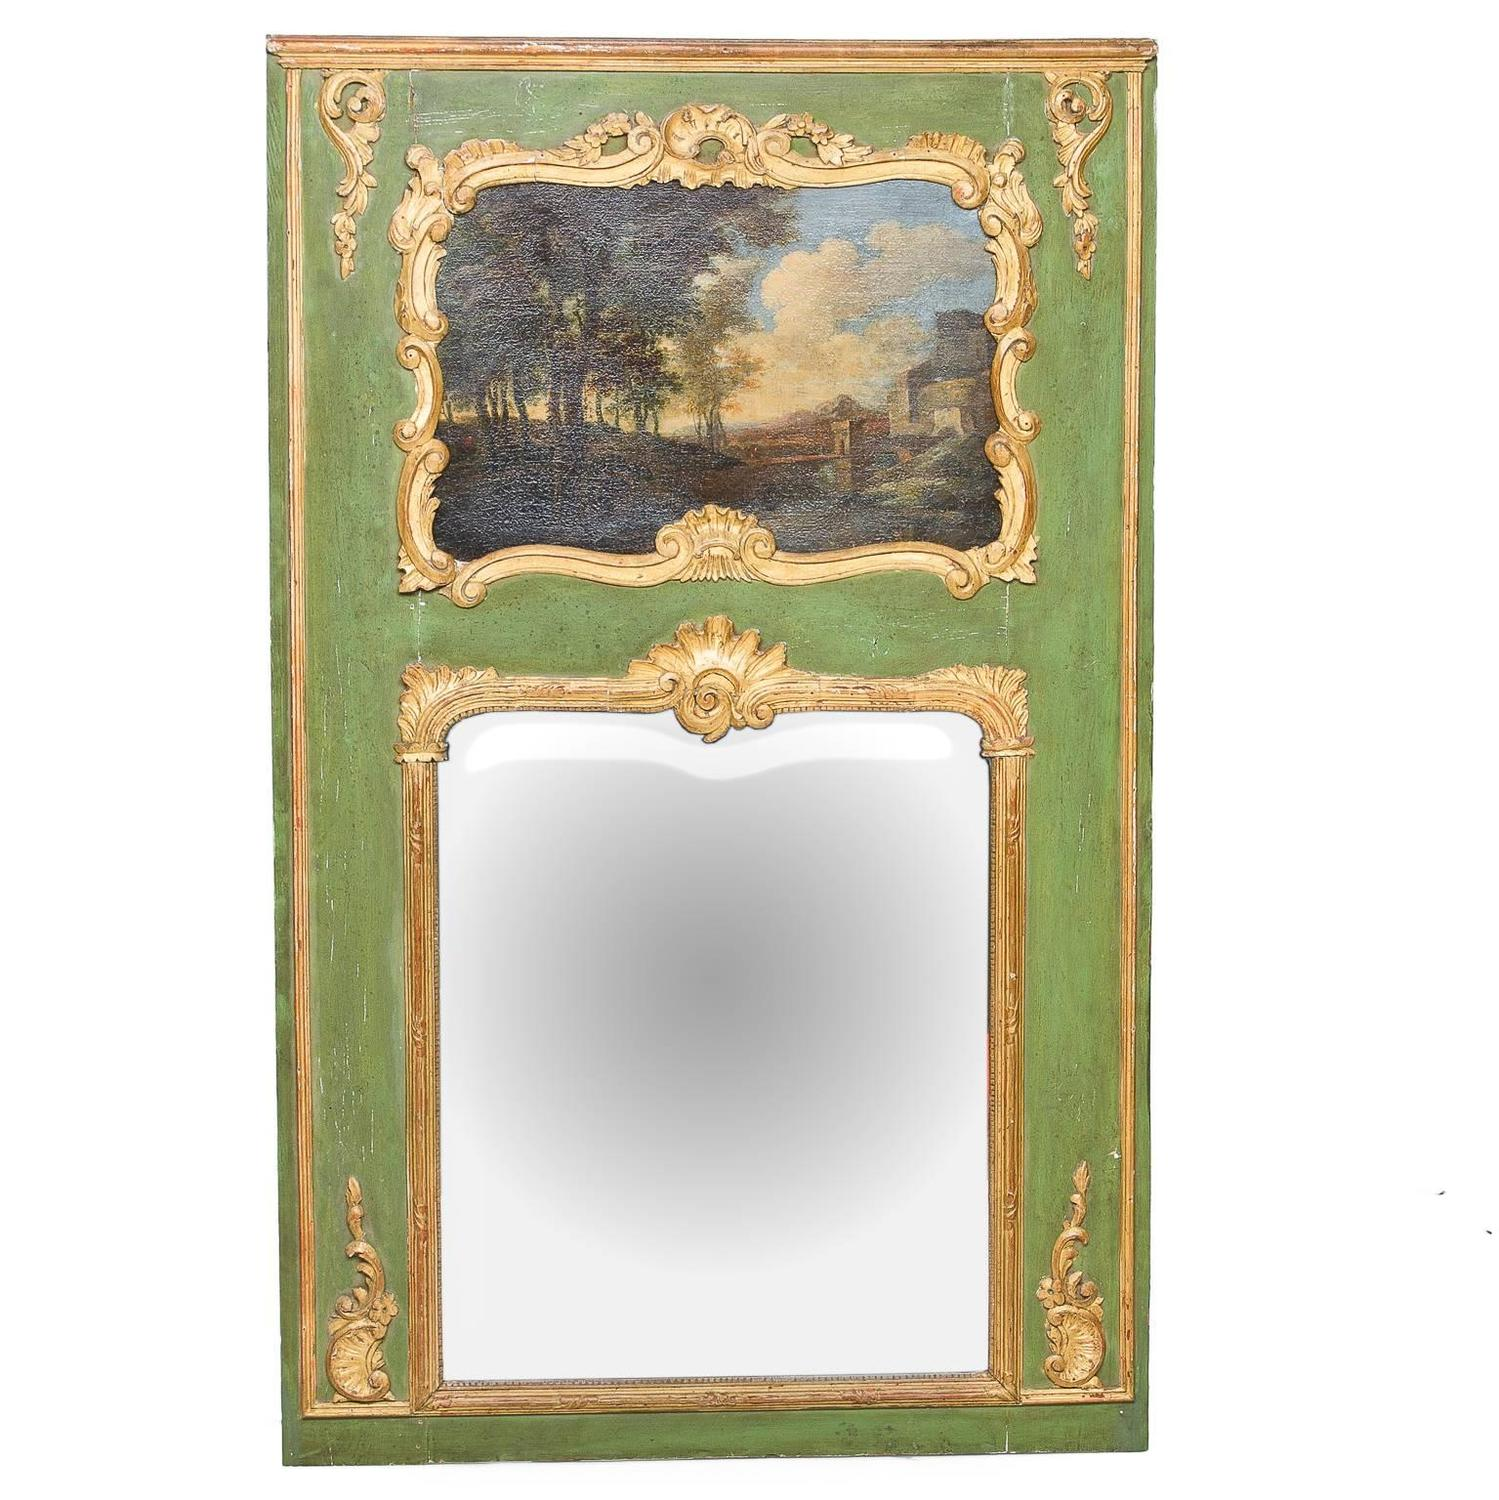 19th century french painted trumeau mirror for sale at 1stdibs. Black Bedroom Furniture Sets. Home Design Ideas